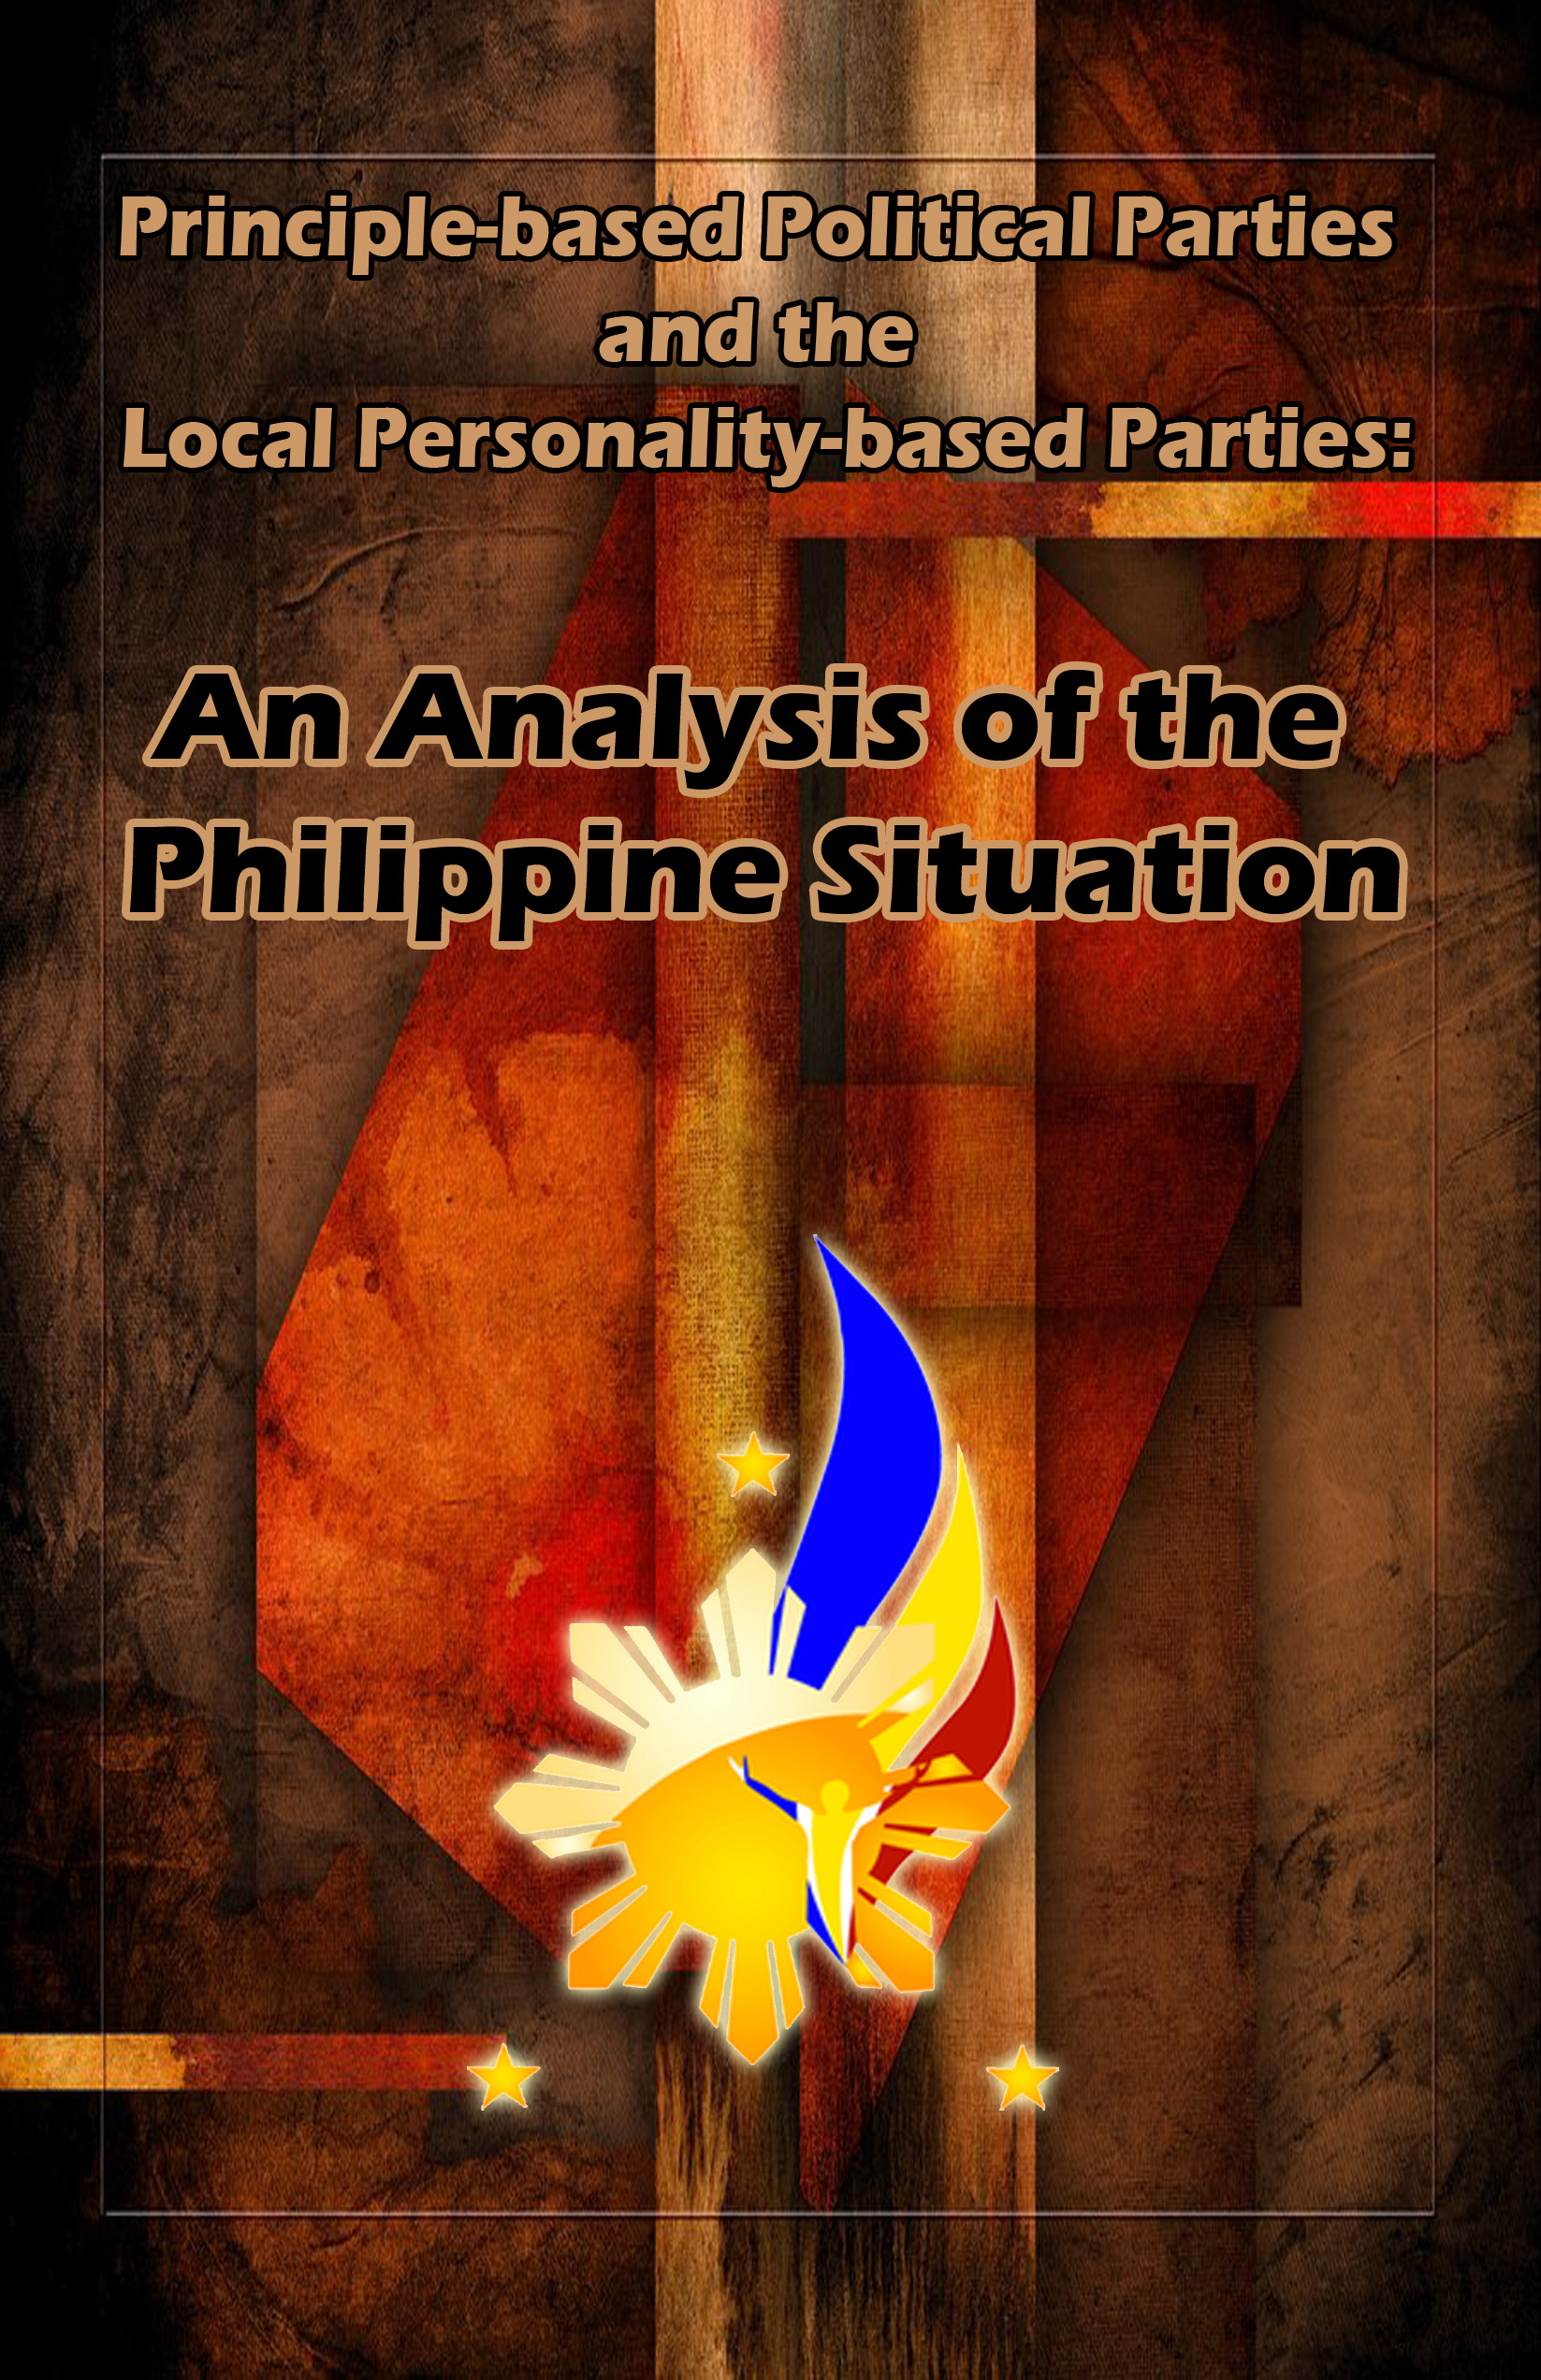 Principle-based Political Parties and the Local Personality-based Parties:  An Analysis of the Philippine Situation